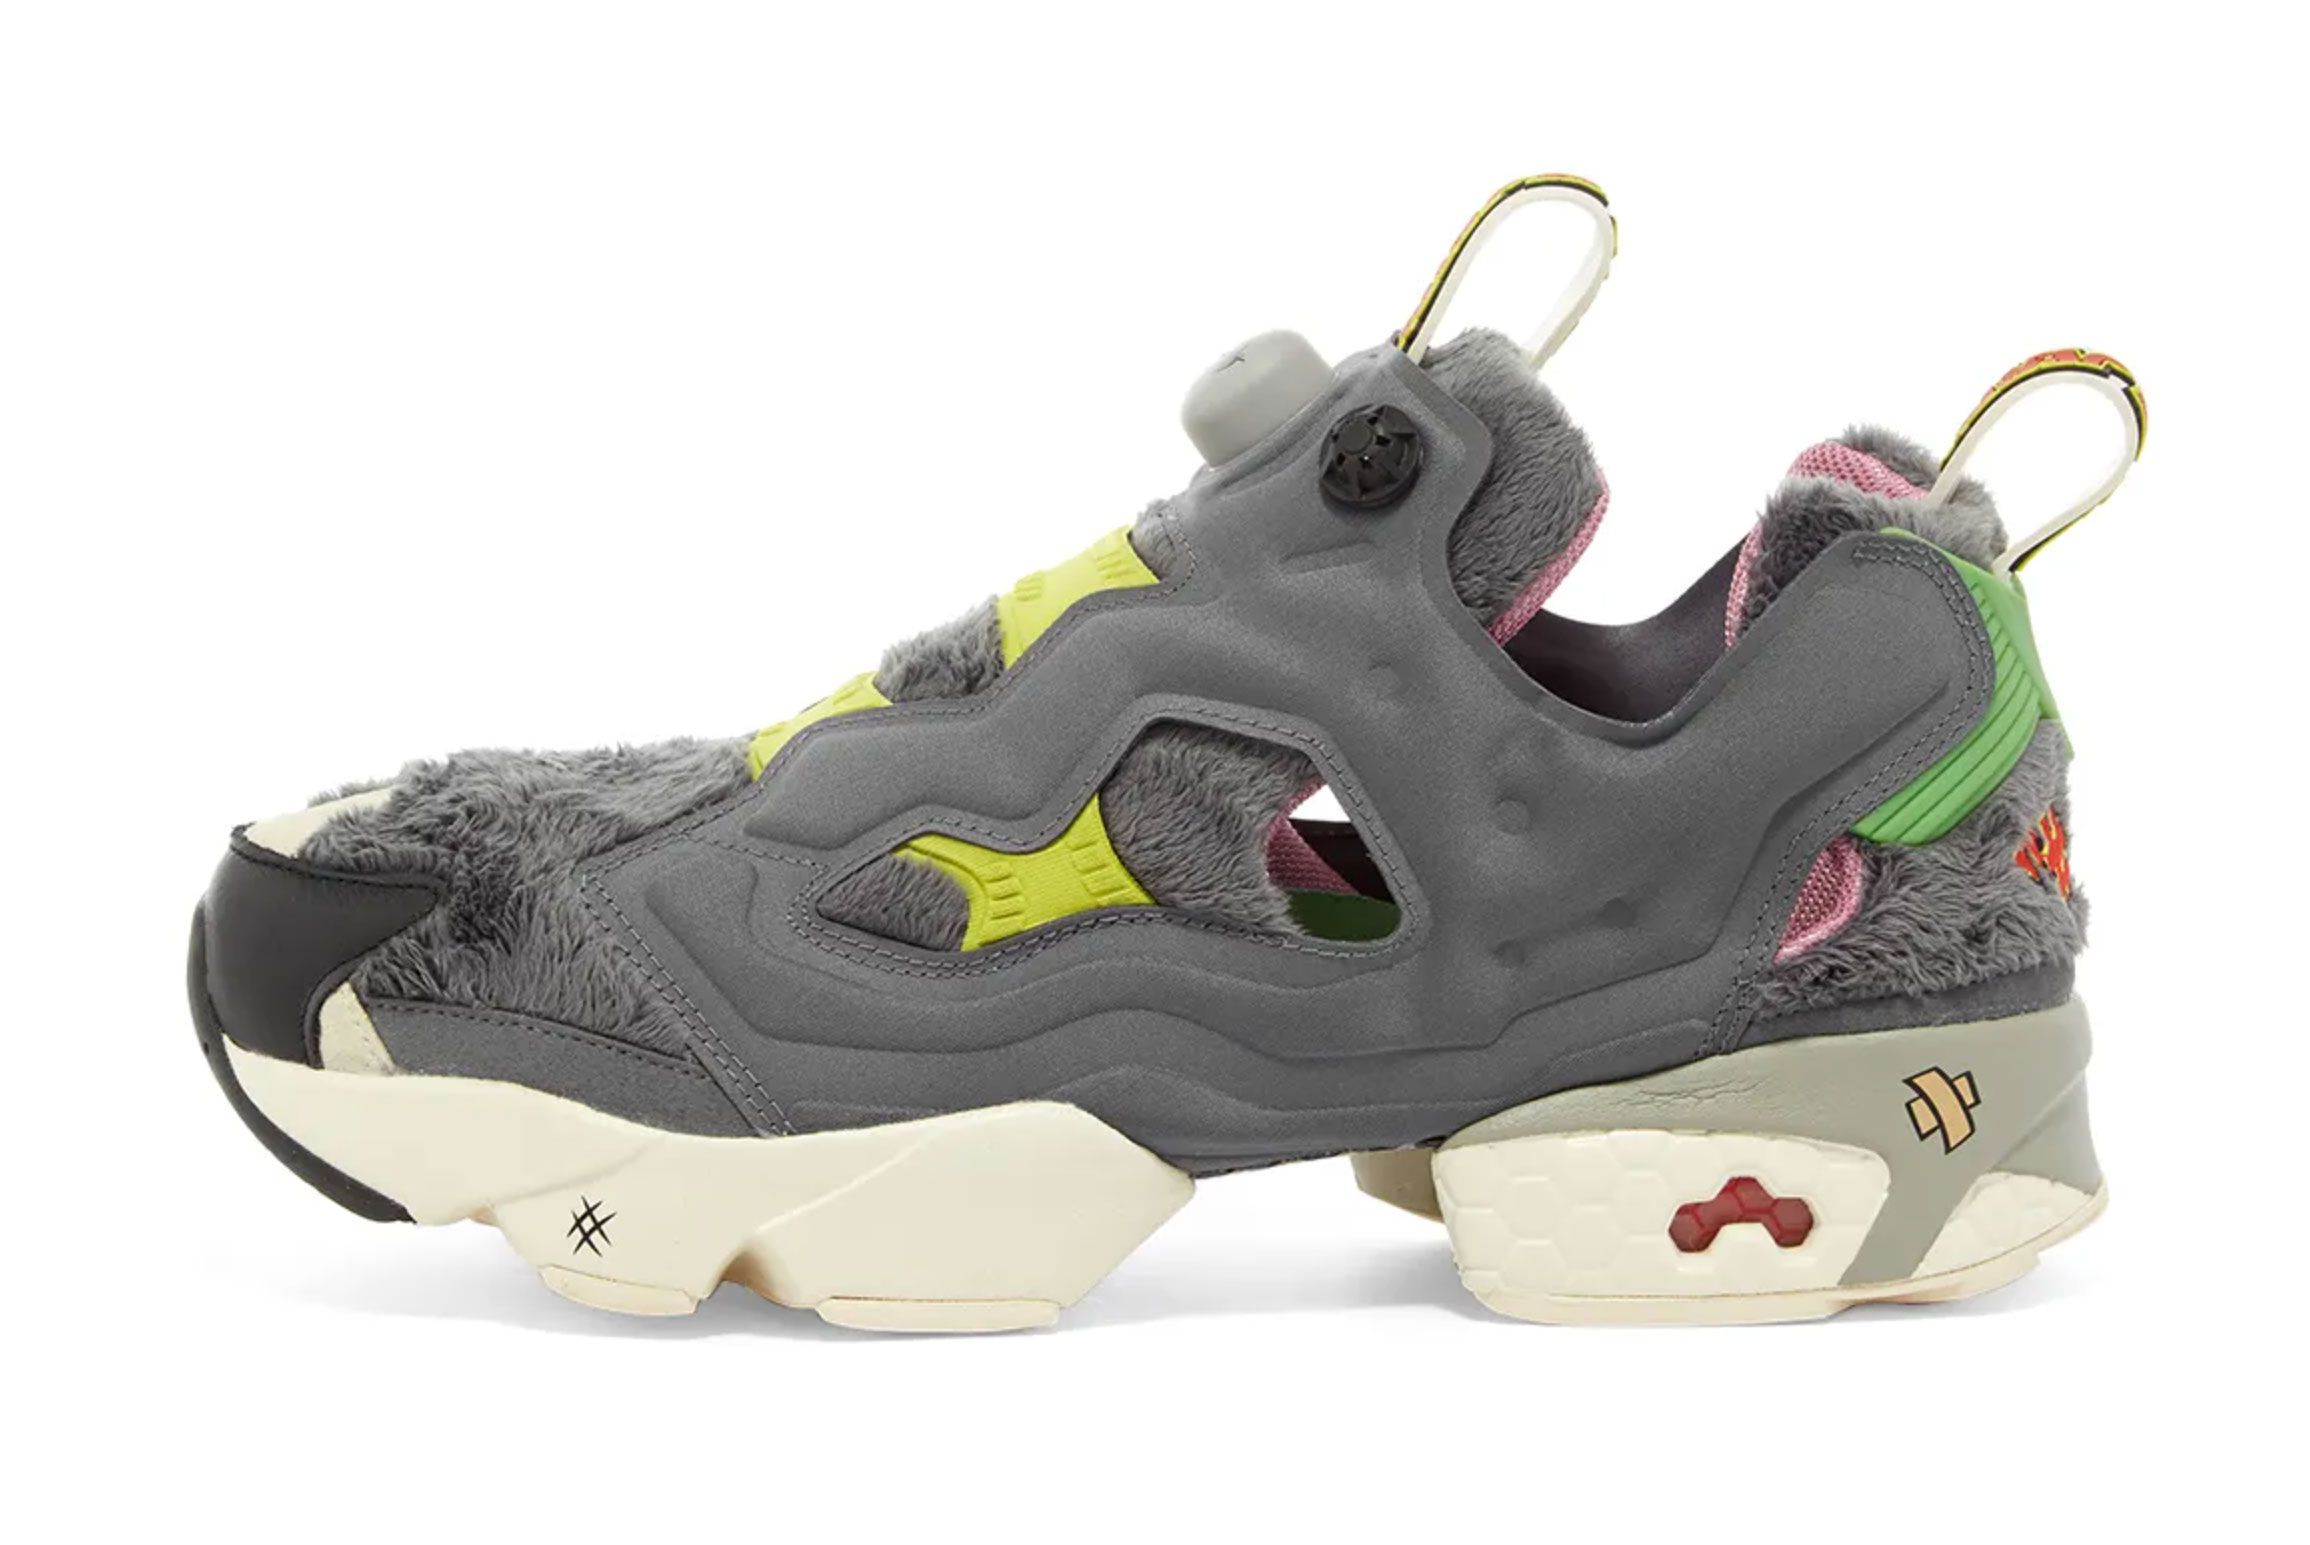 Tom & Jerry x Reebok Instapump Fury